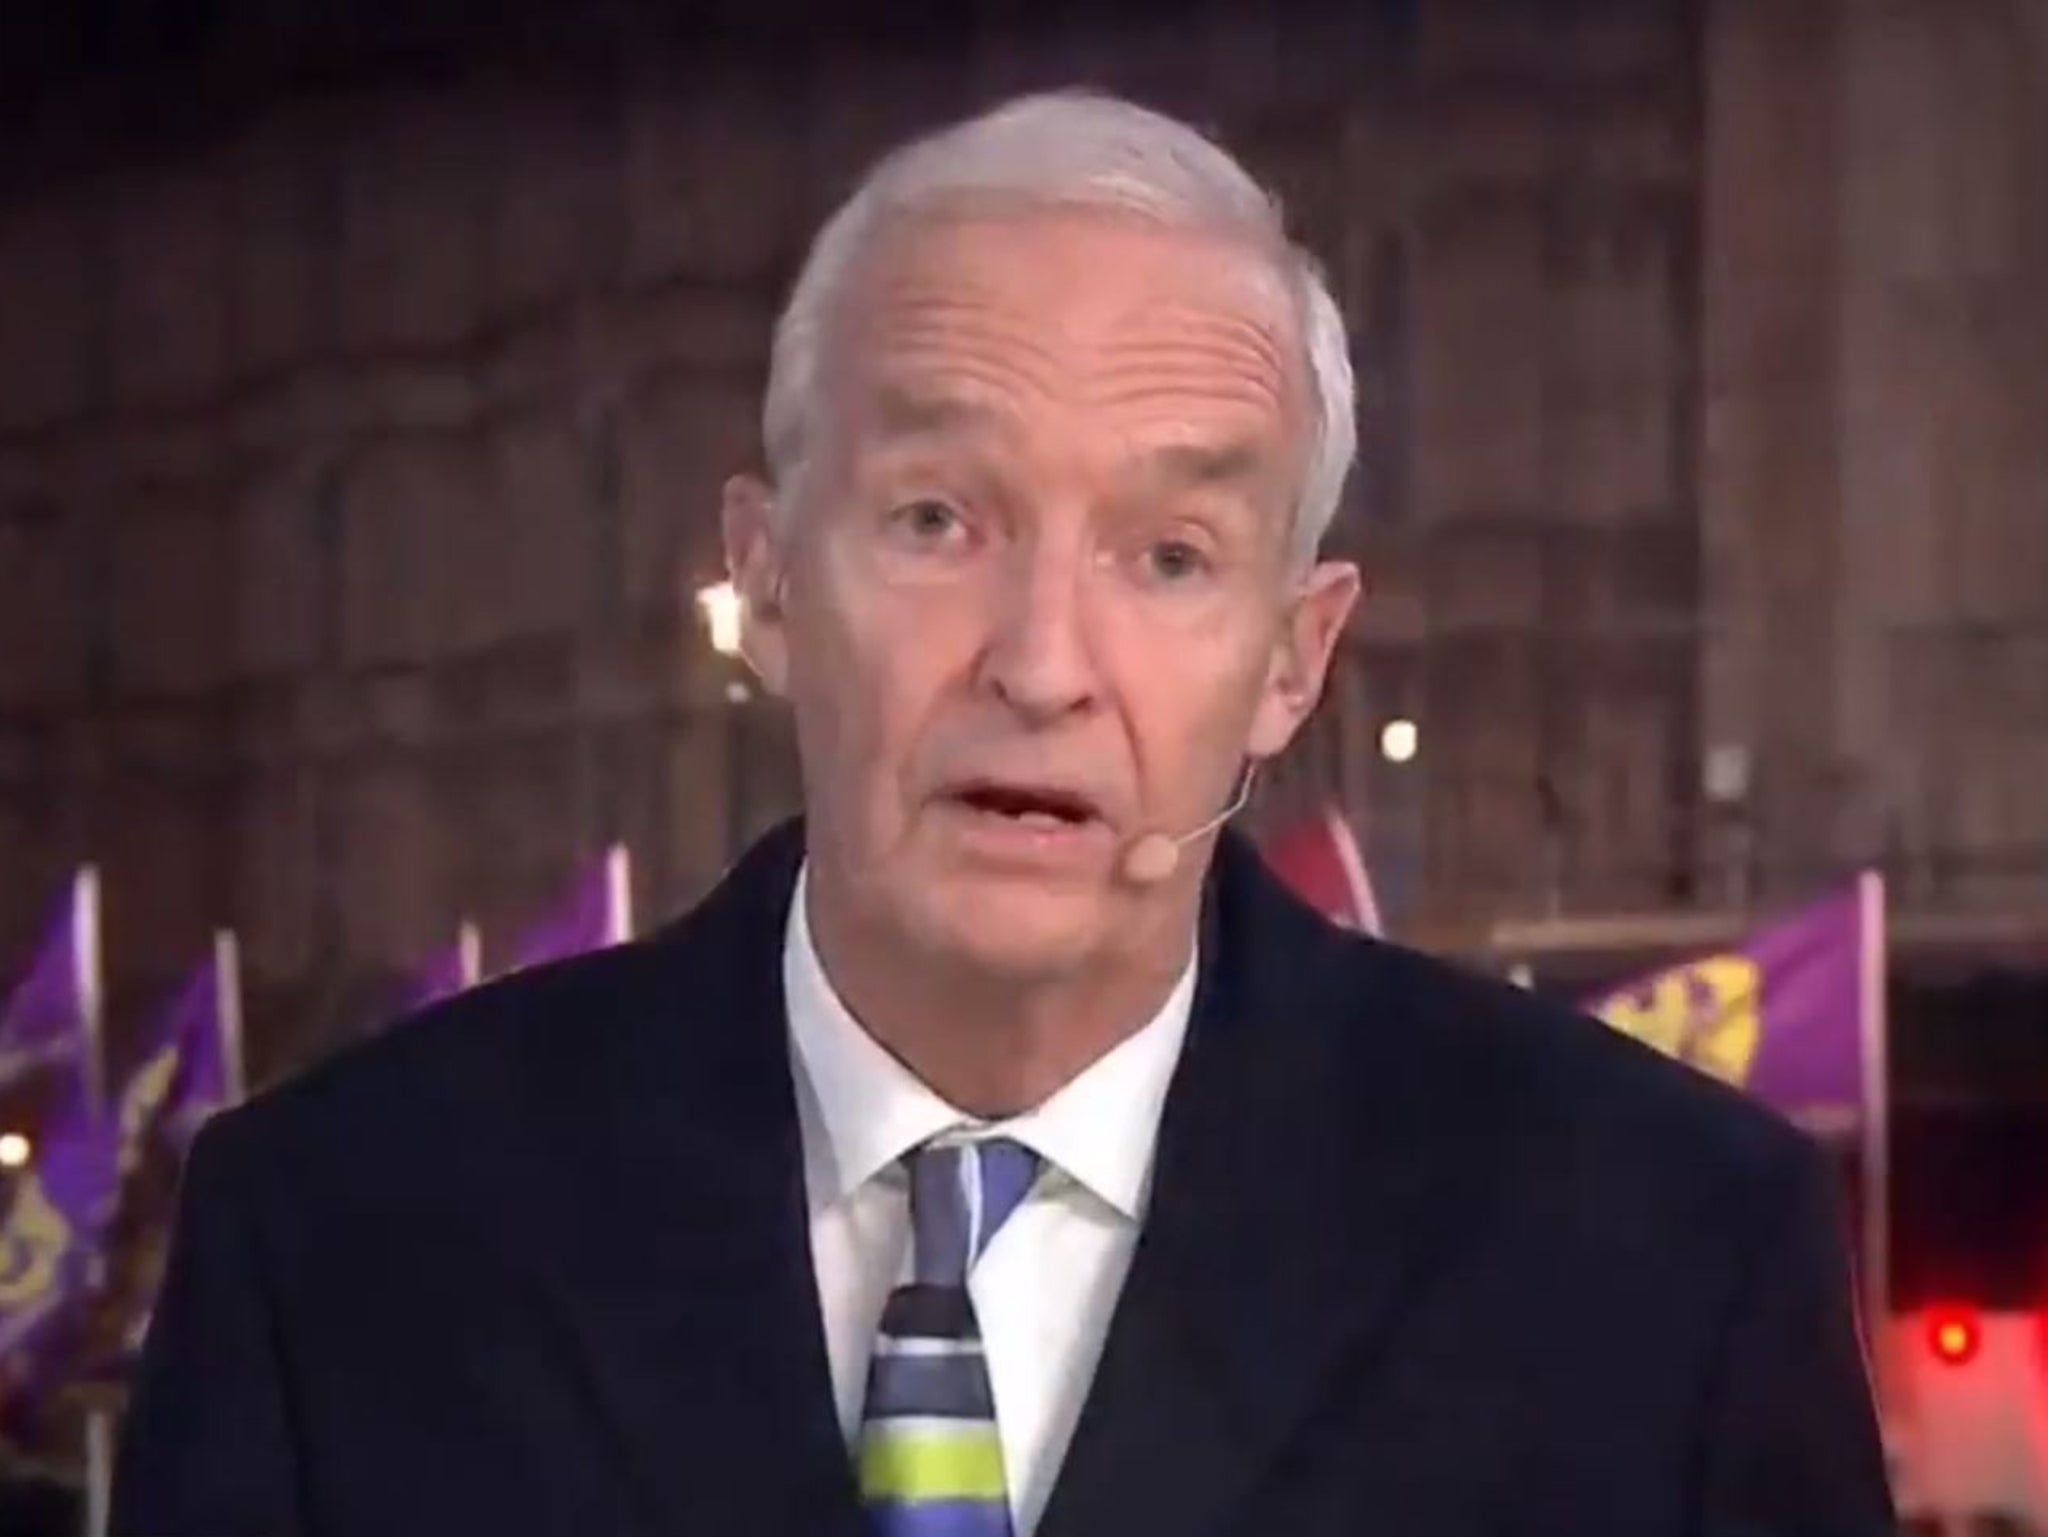 Nigel Farage cleared by Ofcom for saying Jon Snow should be attacked…